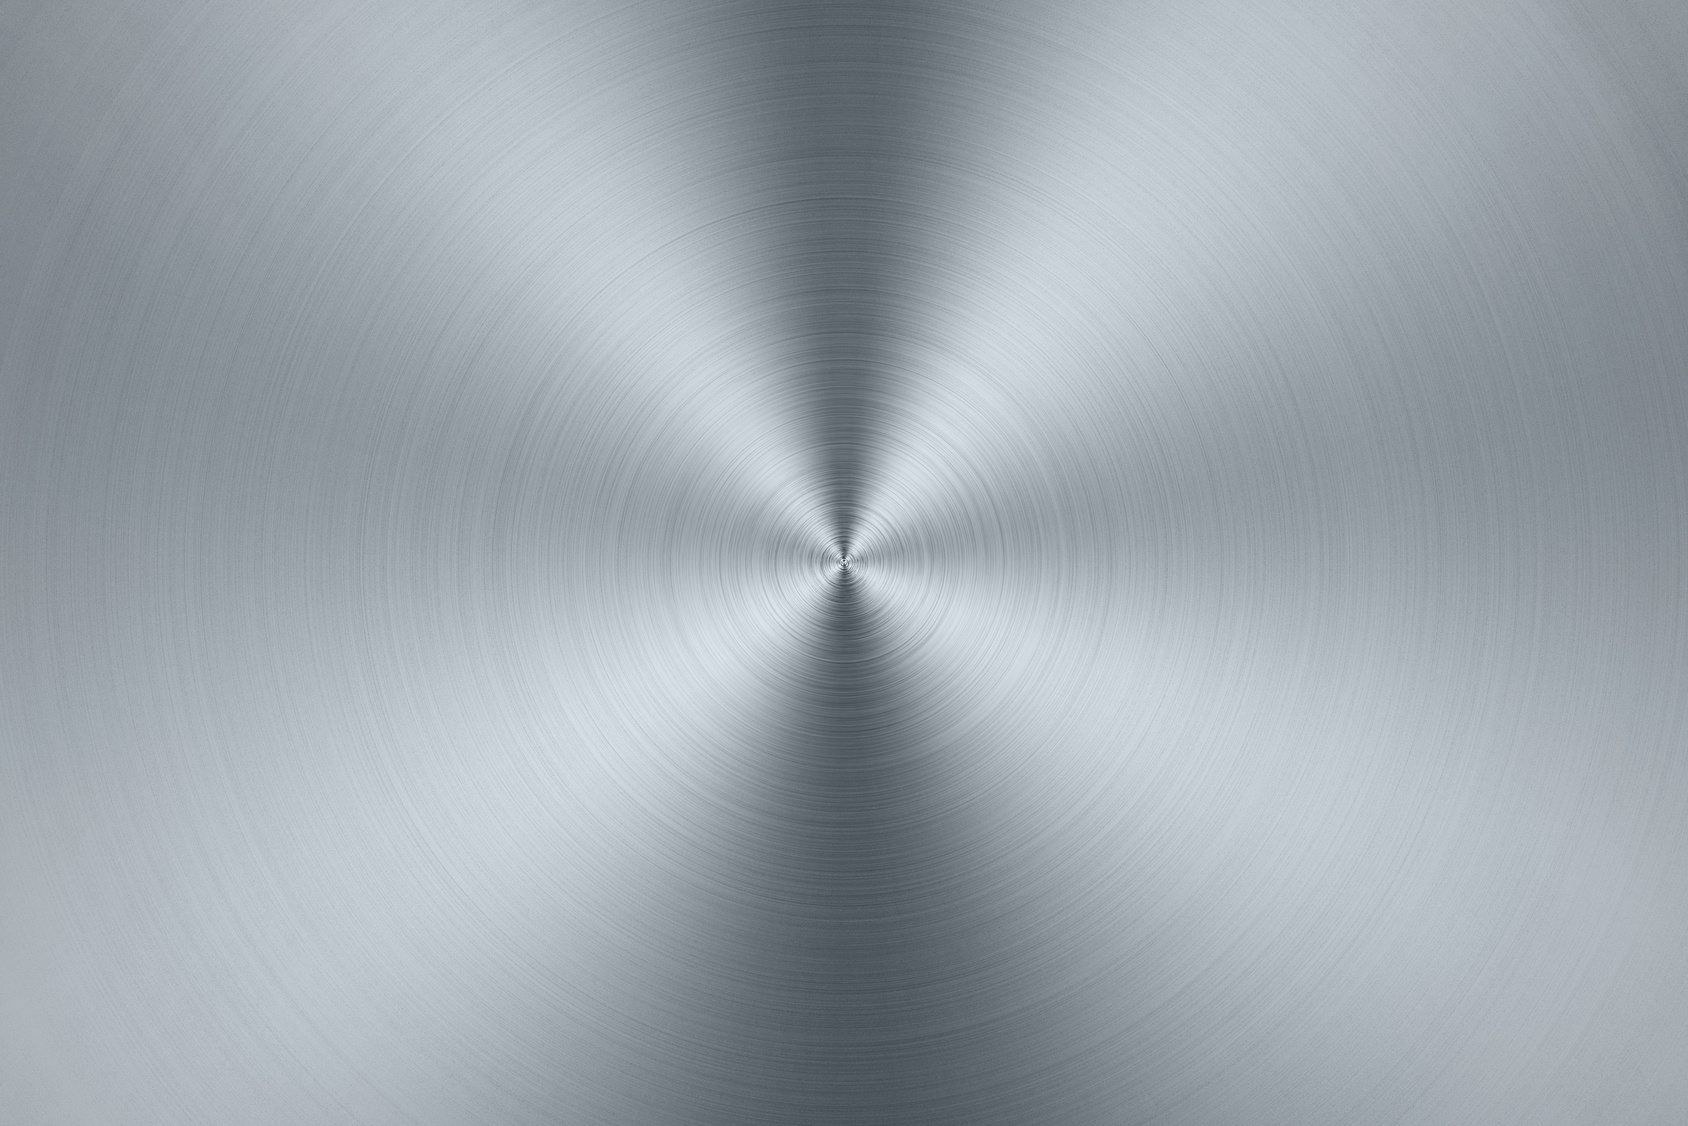 Abstract metal surface background